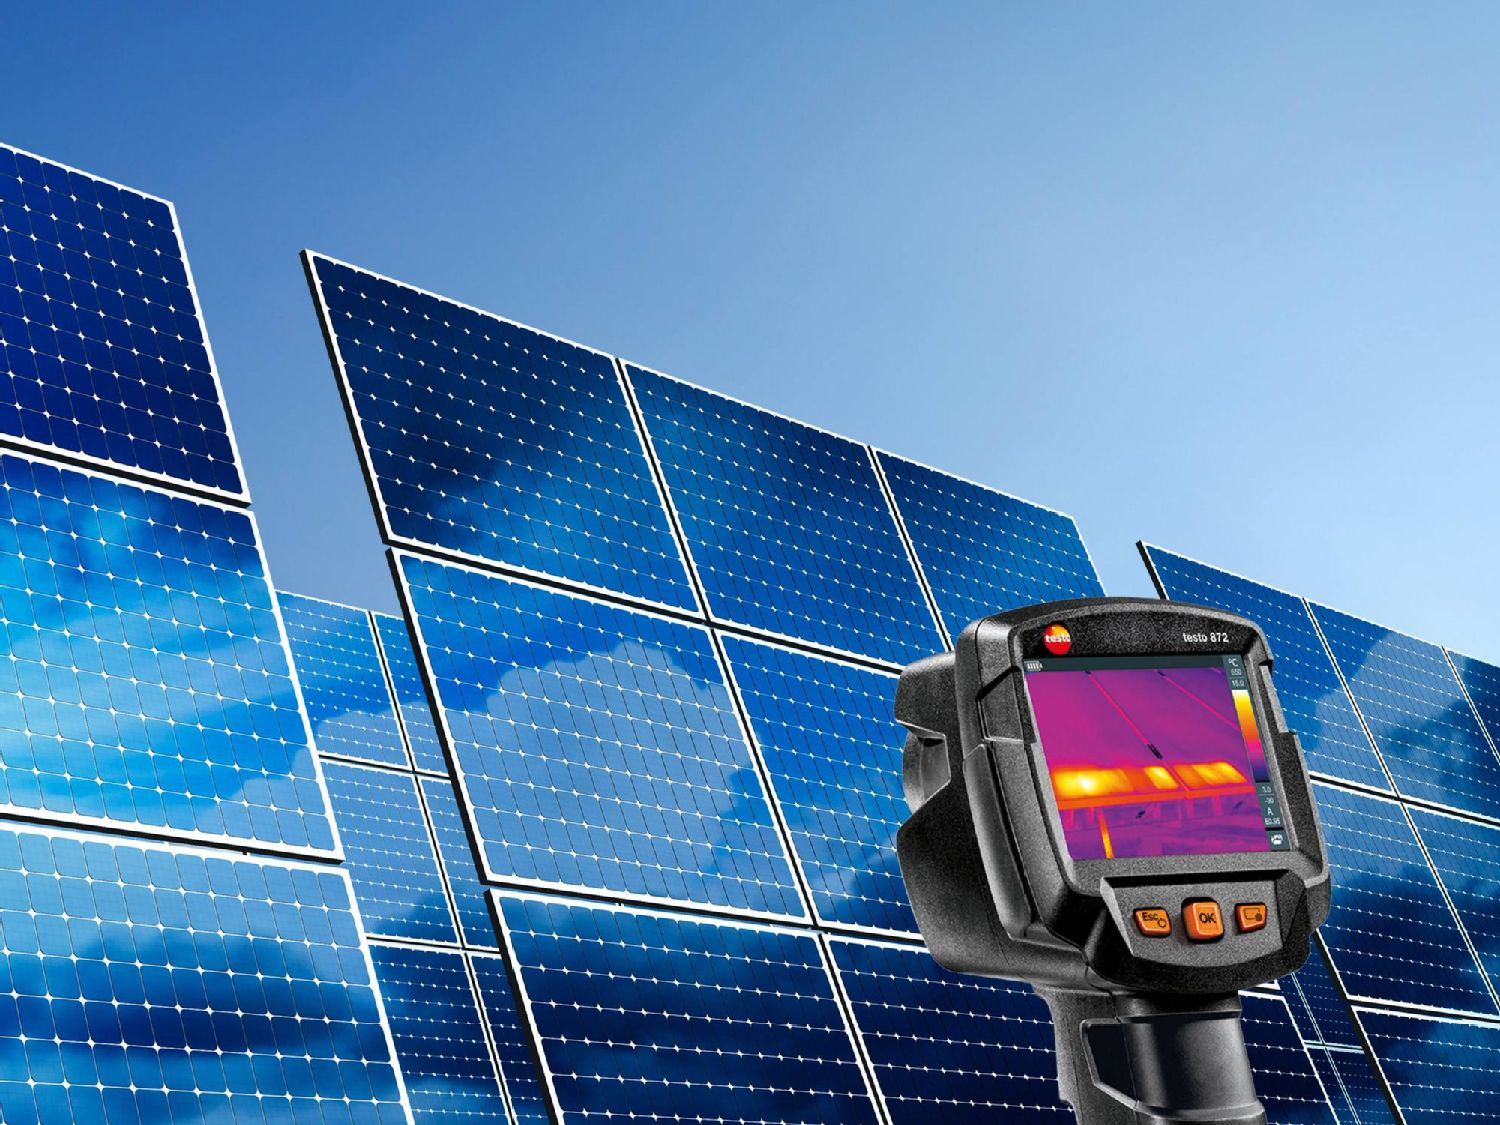 Monitoring photovoltaic systems with thermal imagers